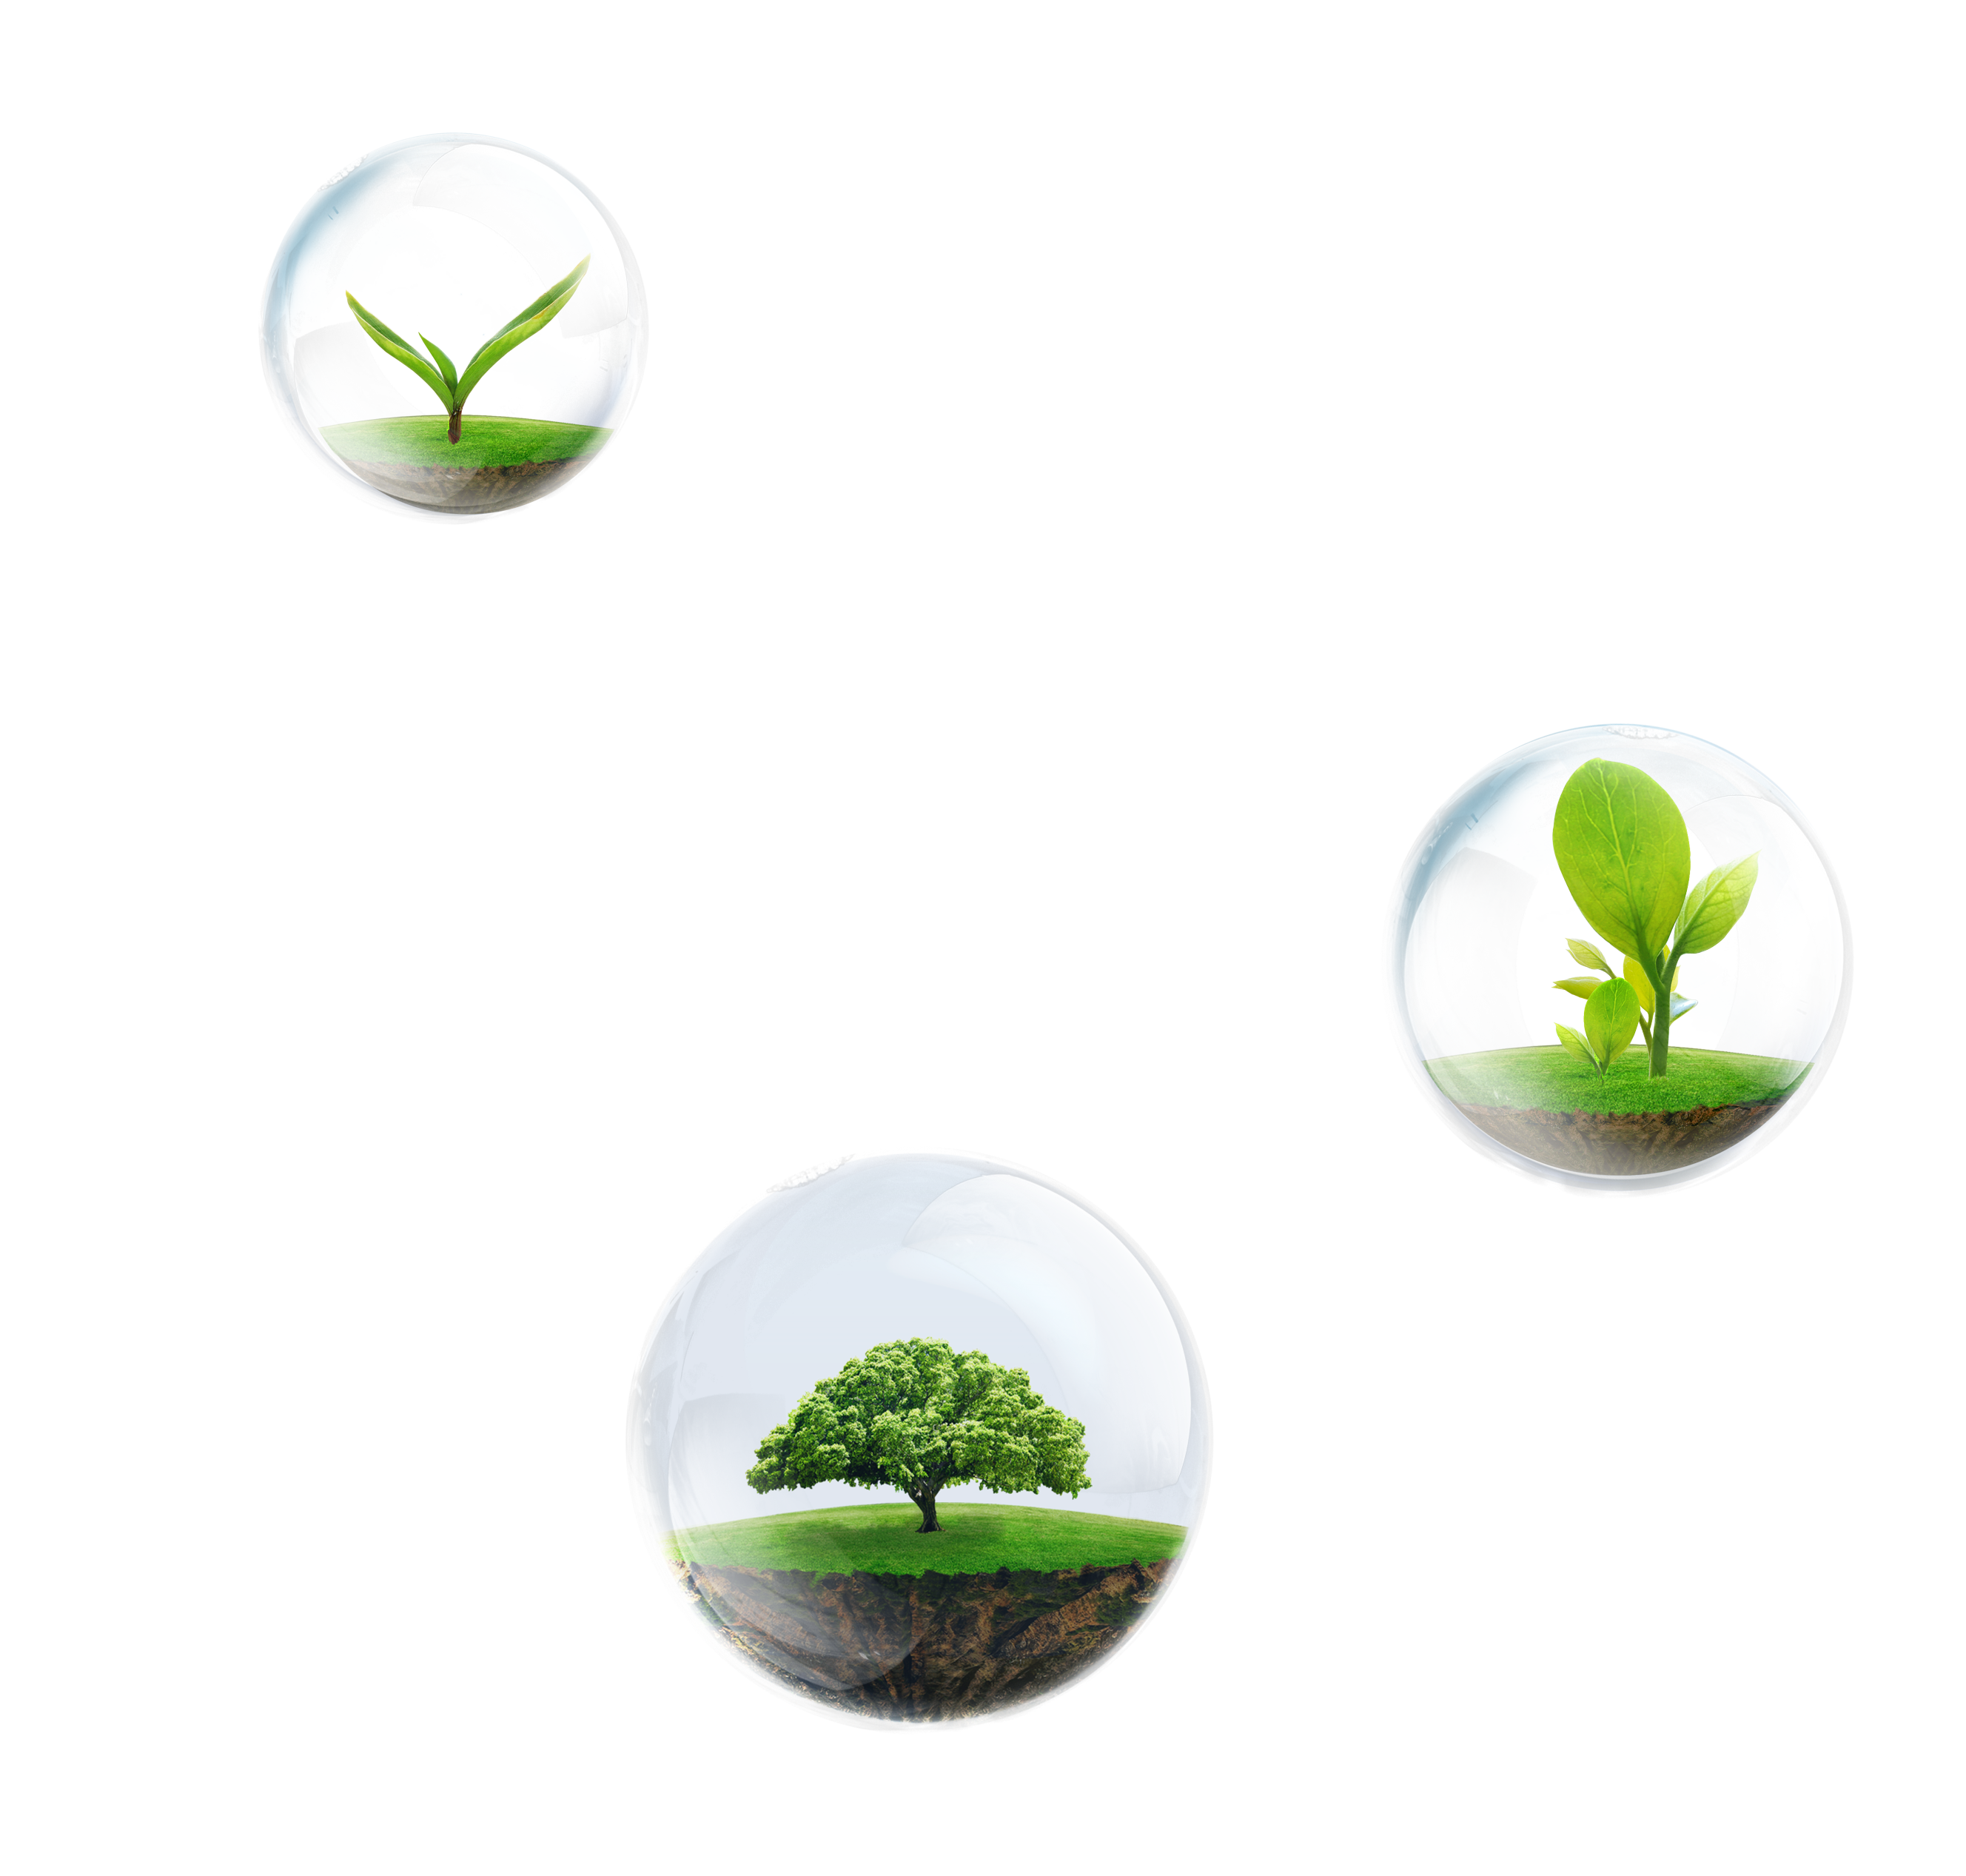 Grass in air png. Laptop dell business sino